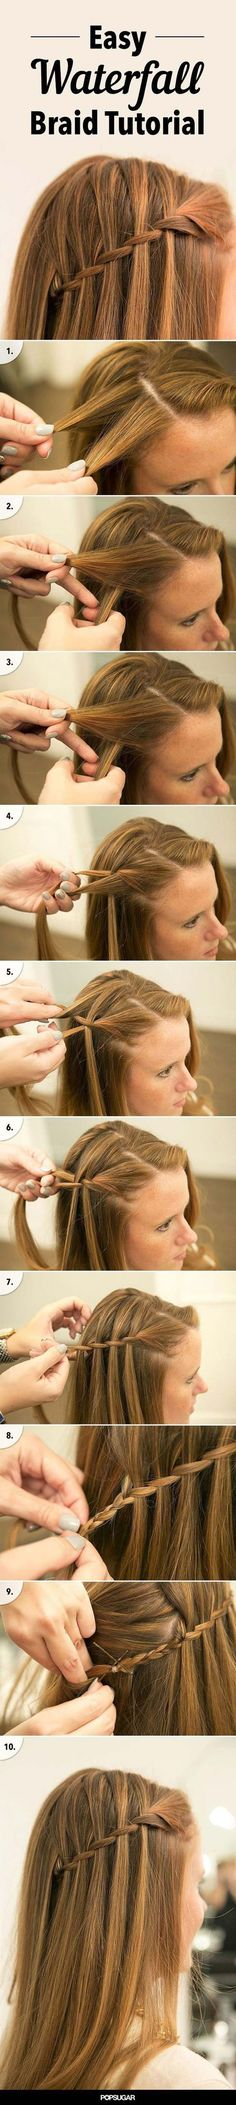 Best Hairstyles for Long Hair - Waterfall Braid Tutorial- Step by Step Tutorials for Easy Curls, Updo, Half Up, Braids and Lazy Girl Looks. Prom Ideas, Special Occasion Hair and Braiding Instructions for Teens, Teenagers and Adults, Women and Girls